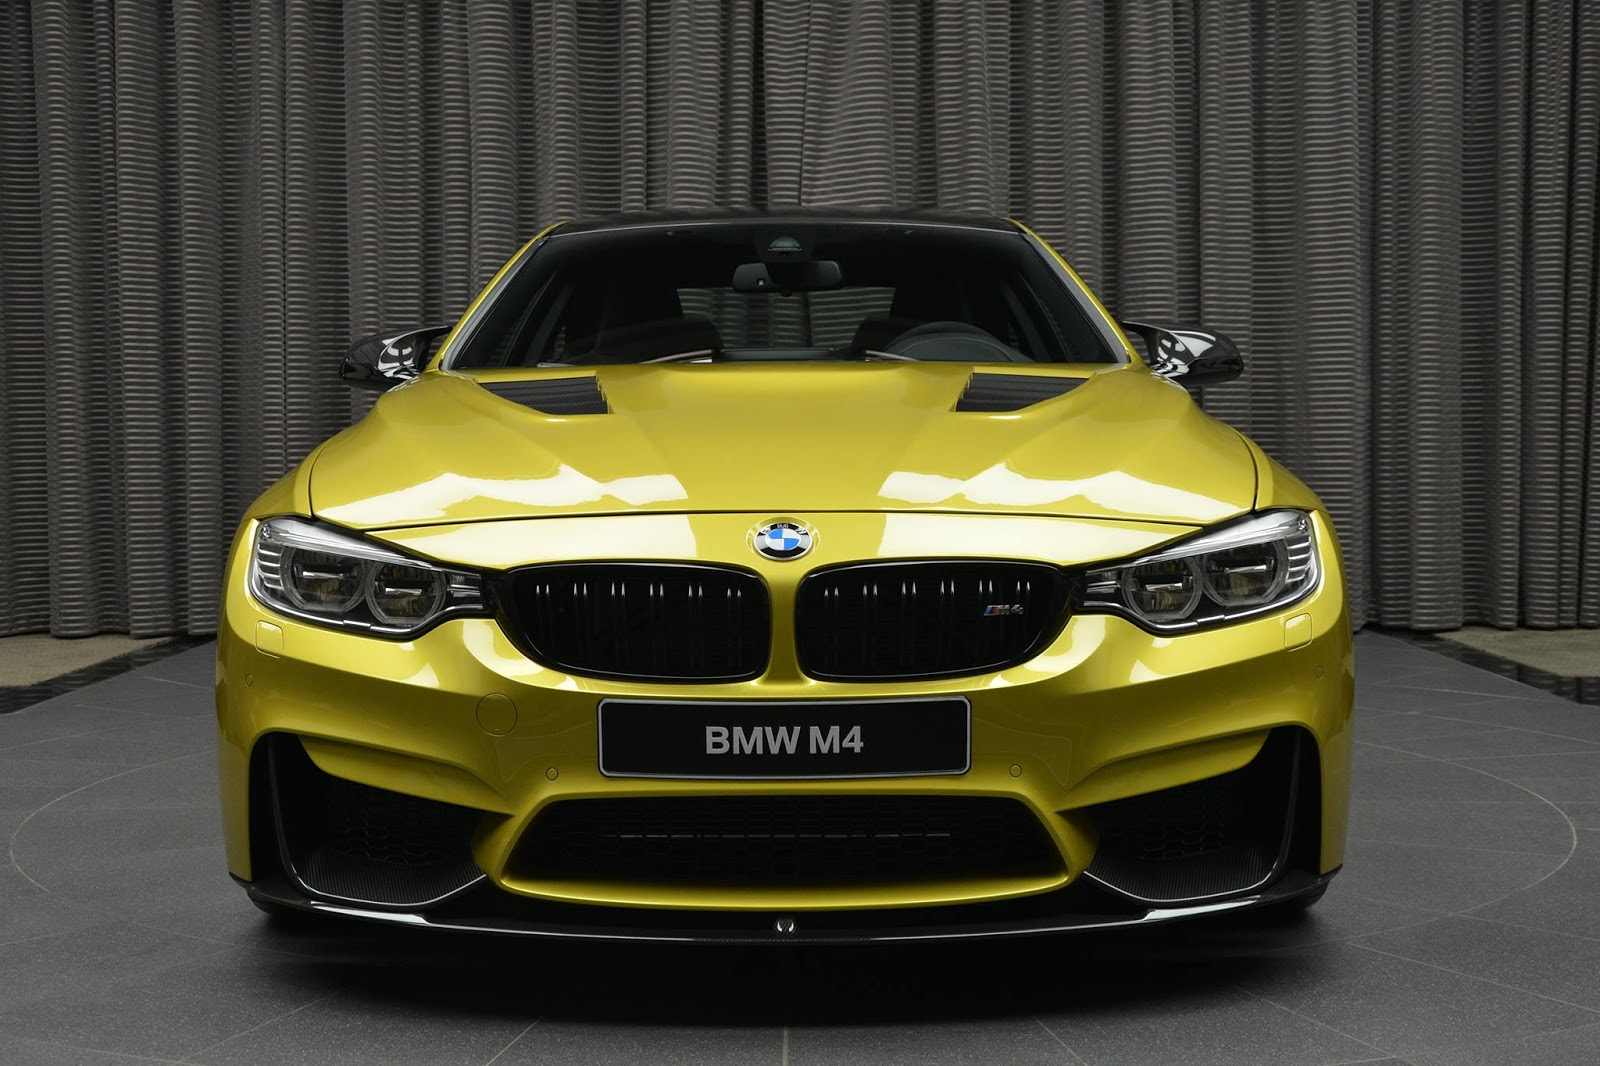 BMW_M4_Austin_Yellow_02